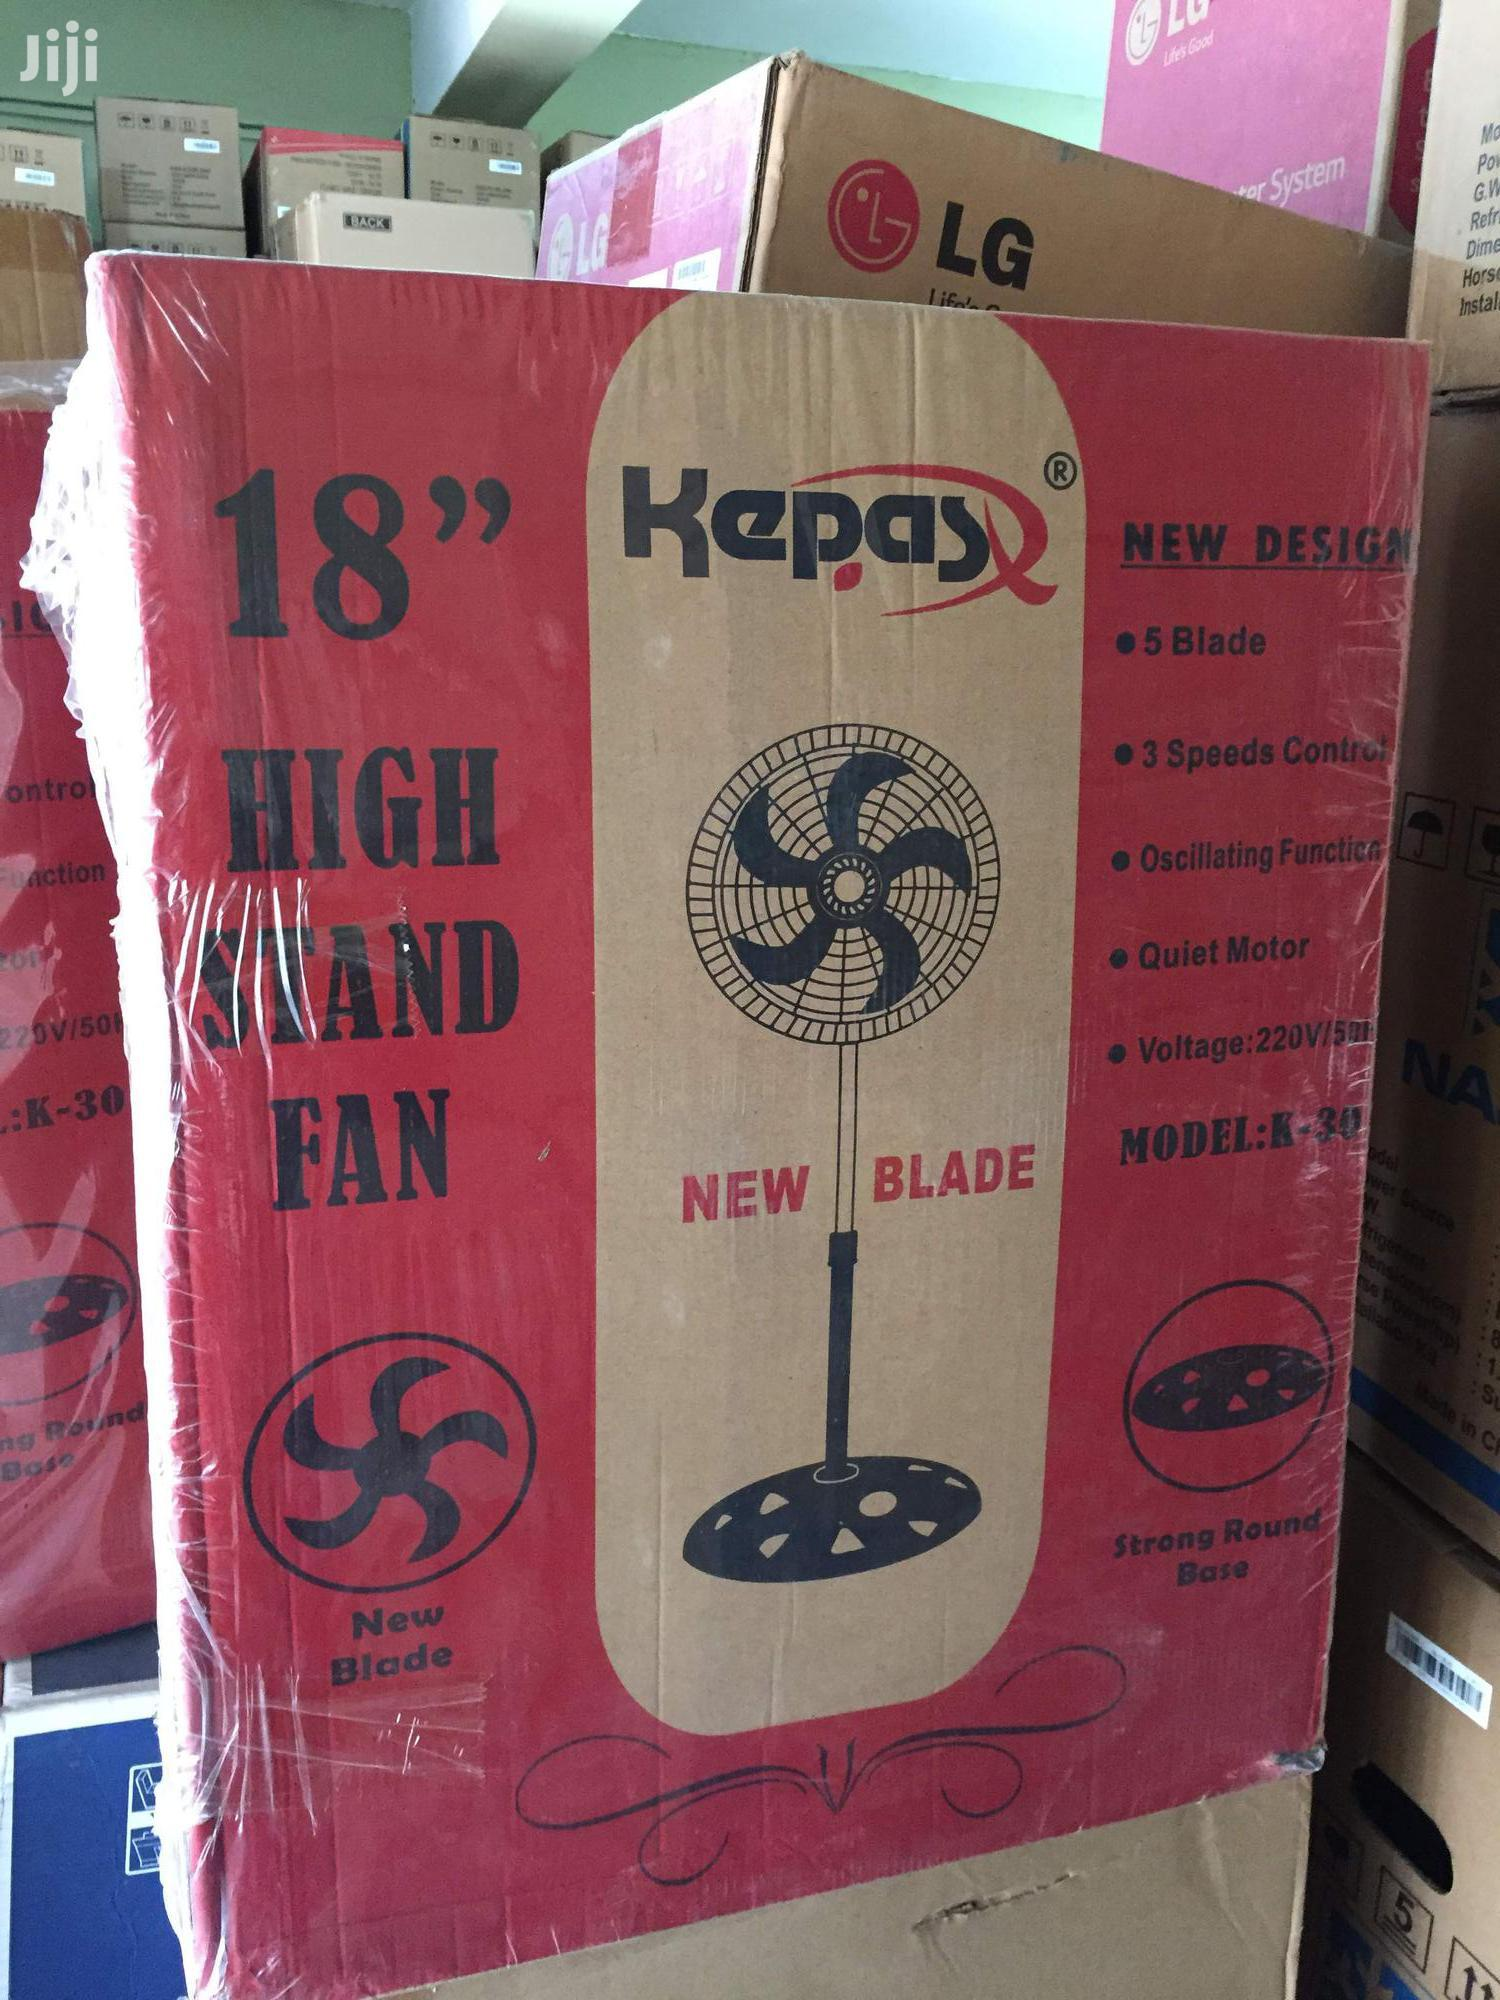 Quality New Design Kepas High Standing Fan